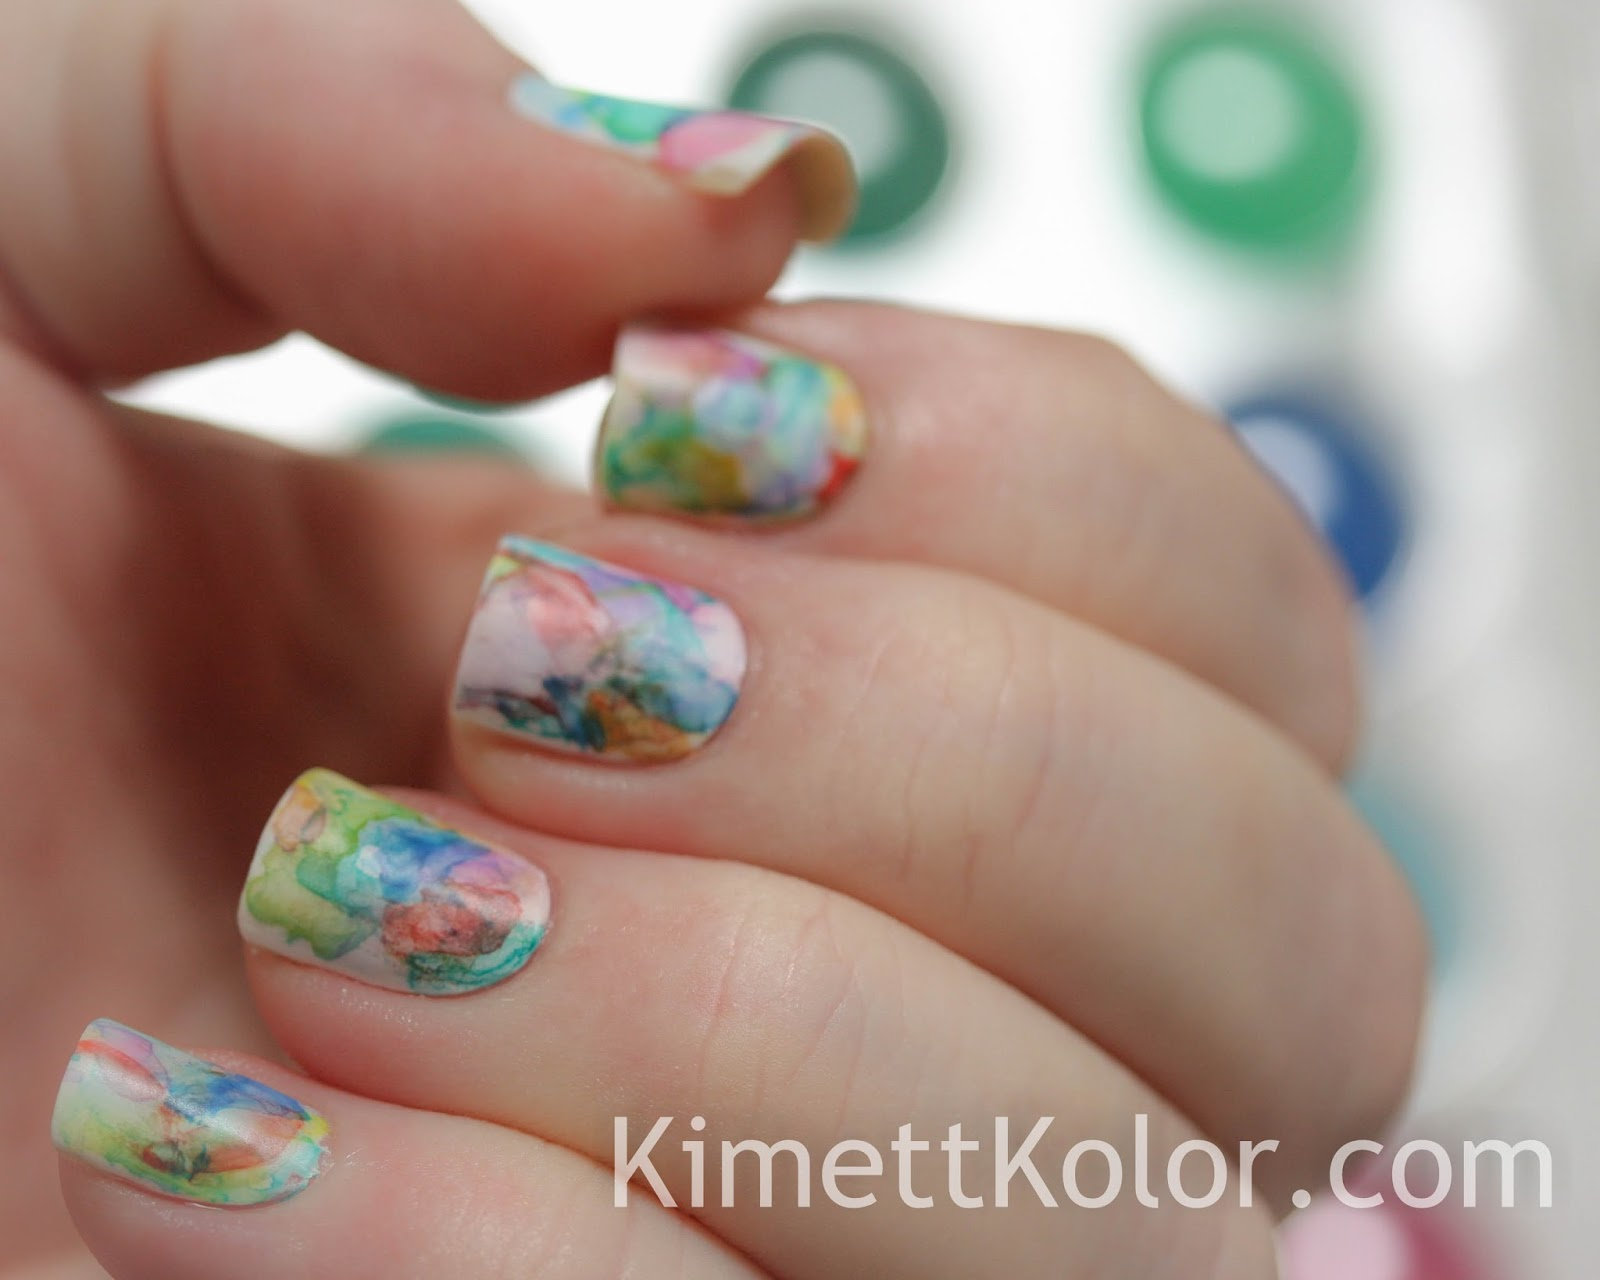 Abstract Watercolor Painting - On My Nails! | Kimett Kolor